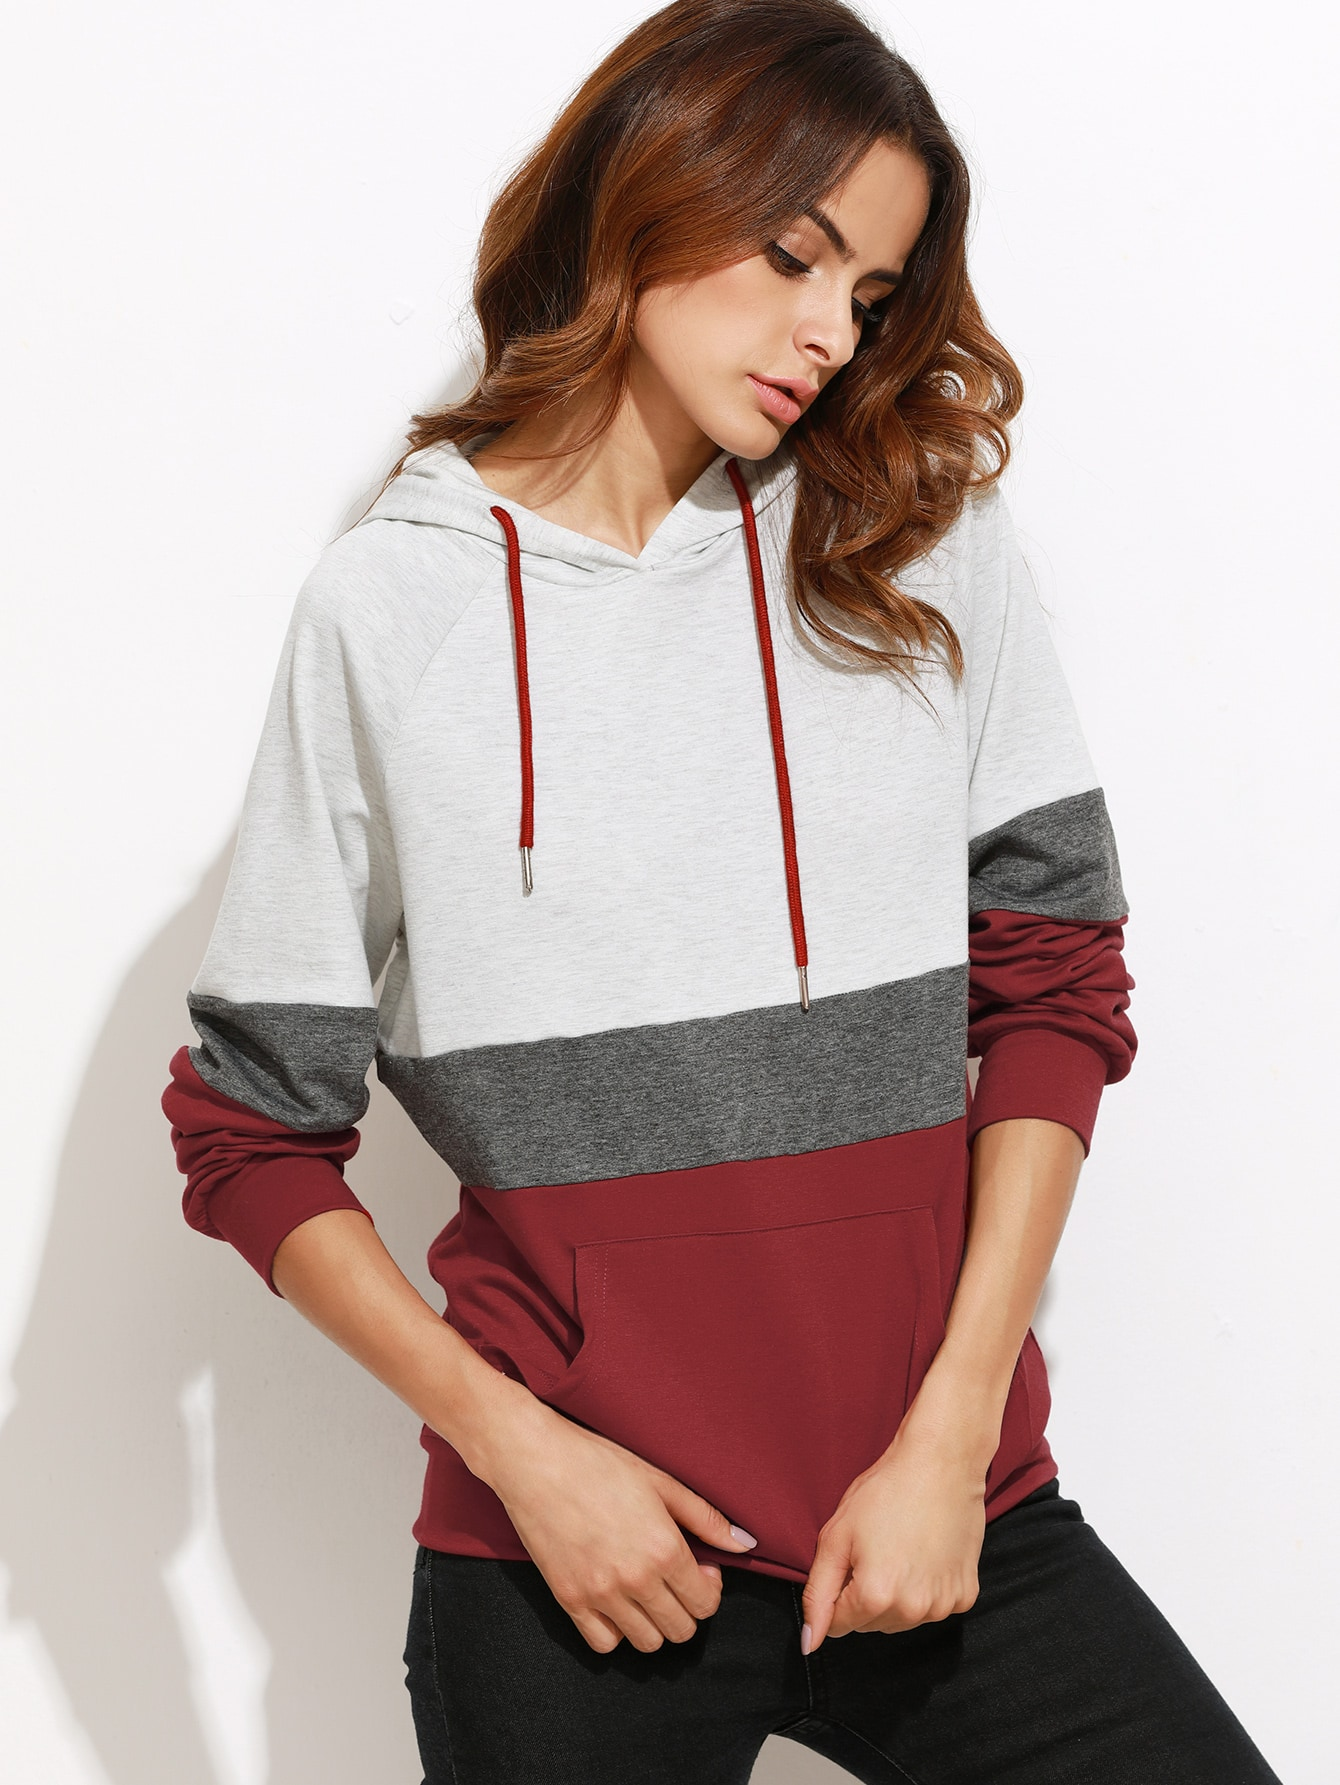 Color Block Raglan Sleeve Hoodie With Pocket ds202 low price pocket oscilloscope with color display